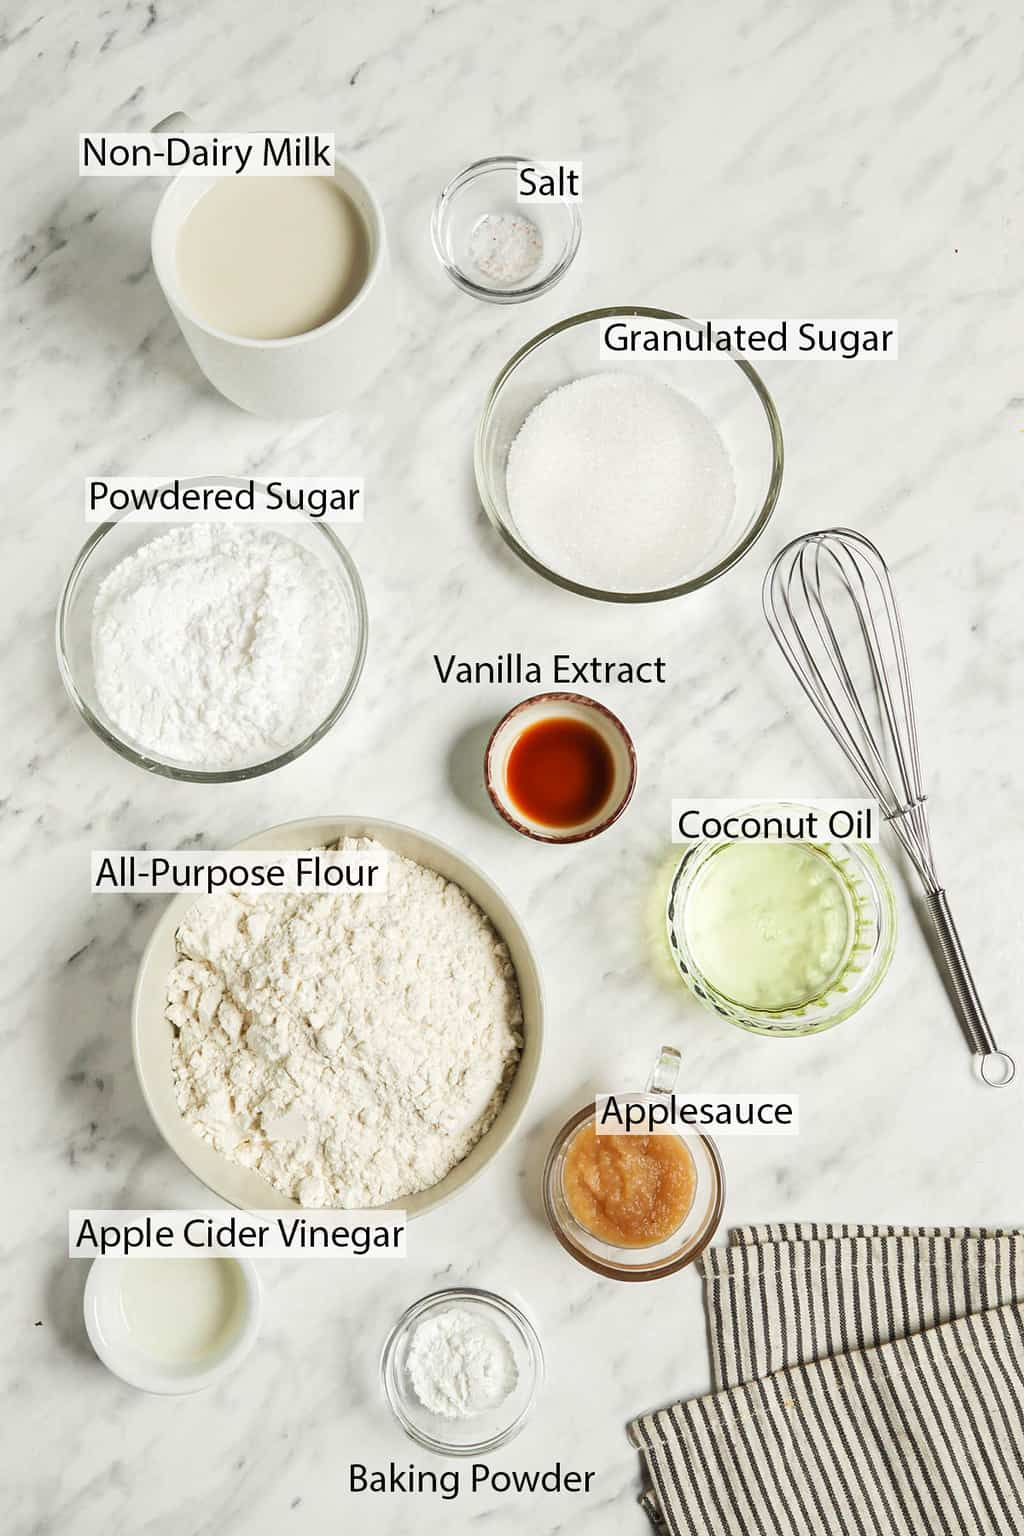 Ingredients for glazed doughnuts measured out and placed on a marble countertop.